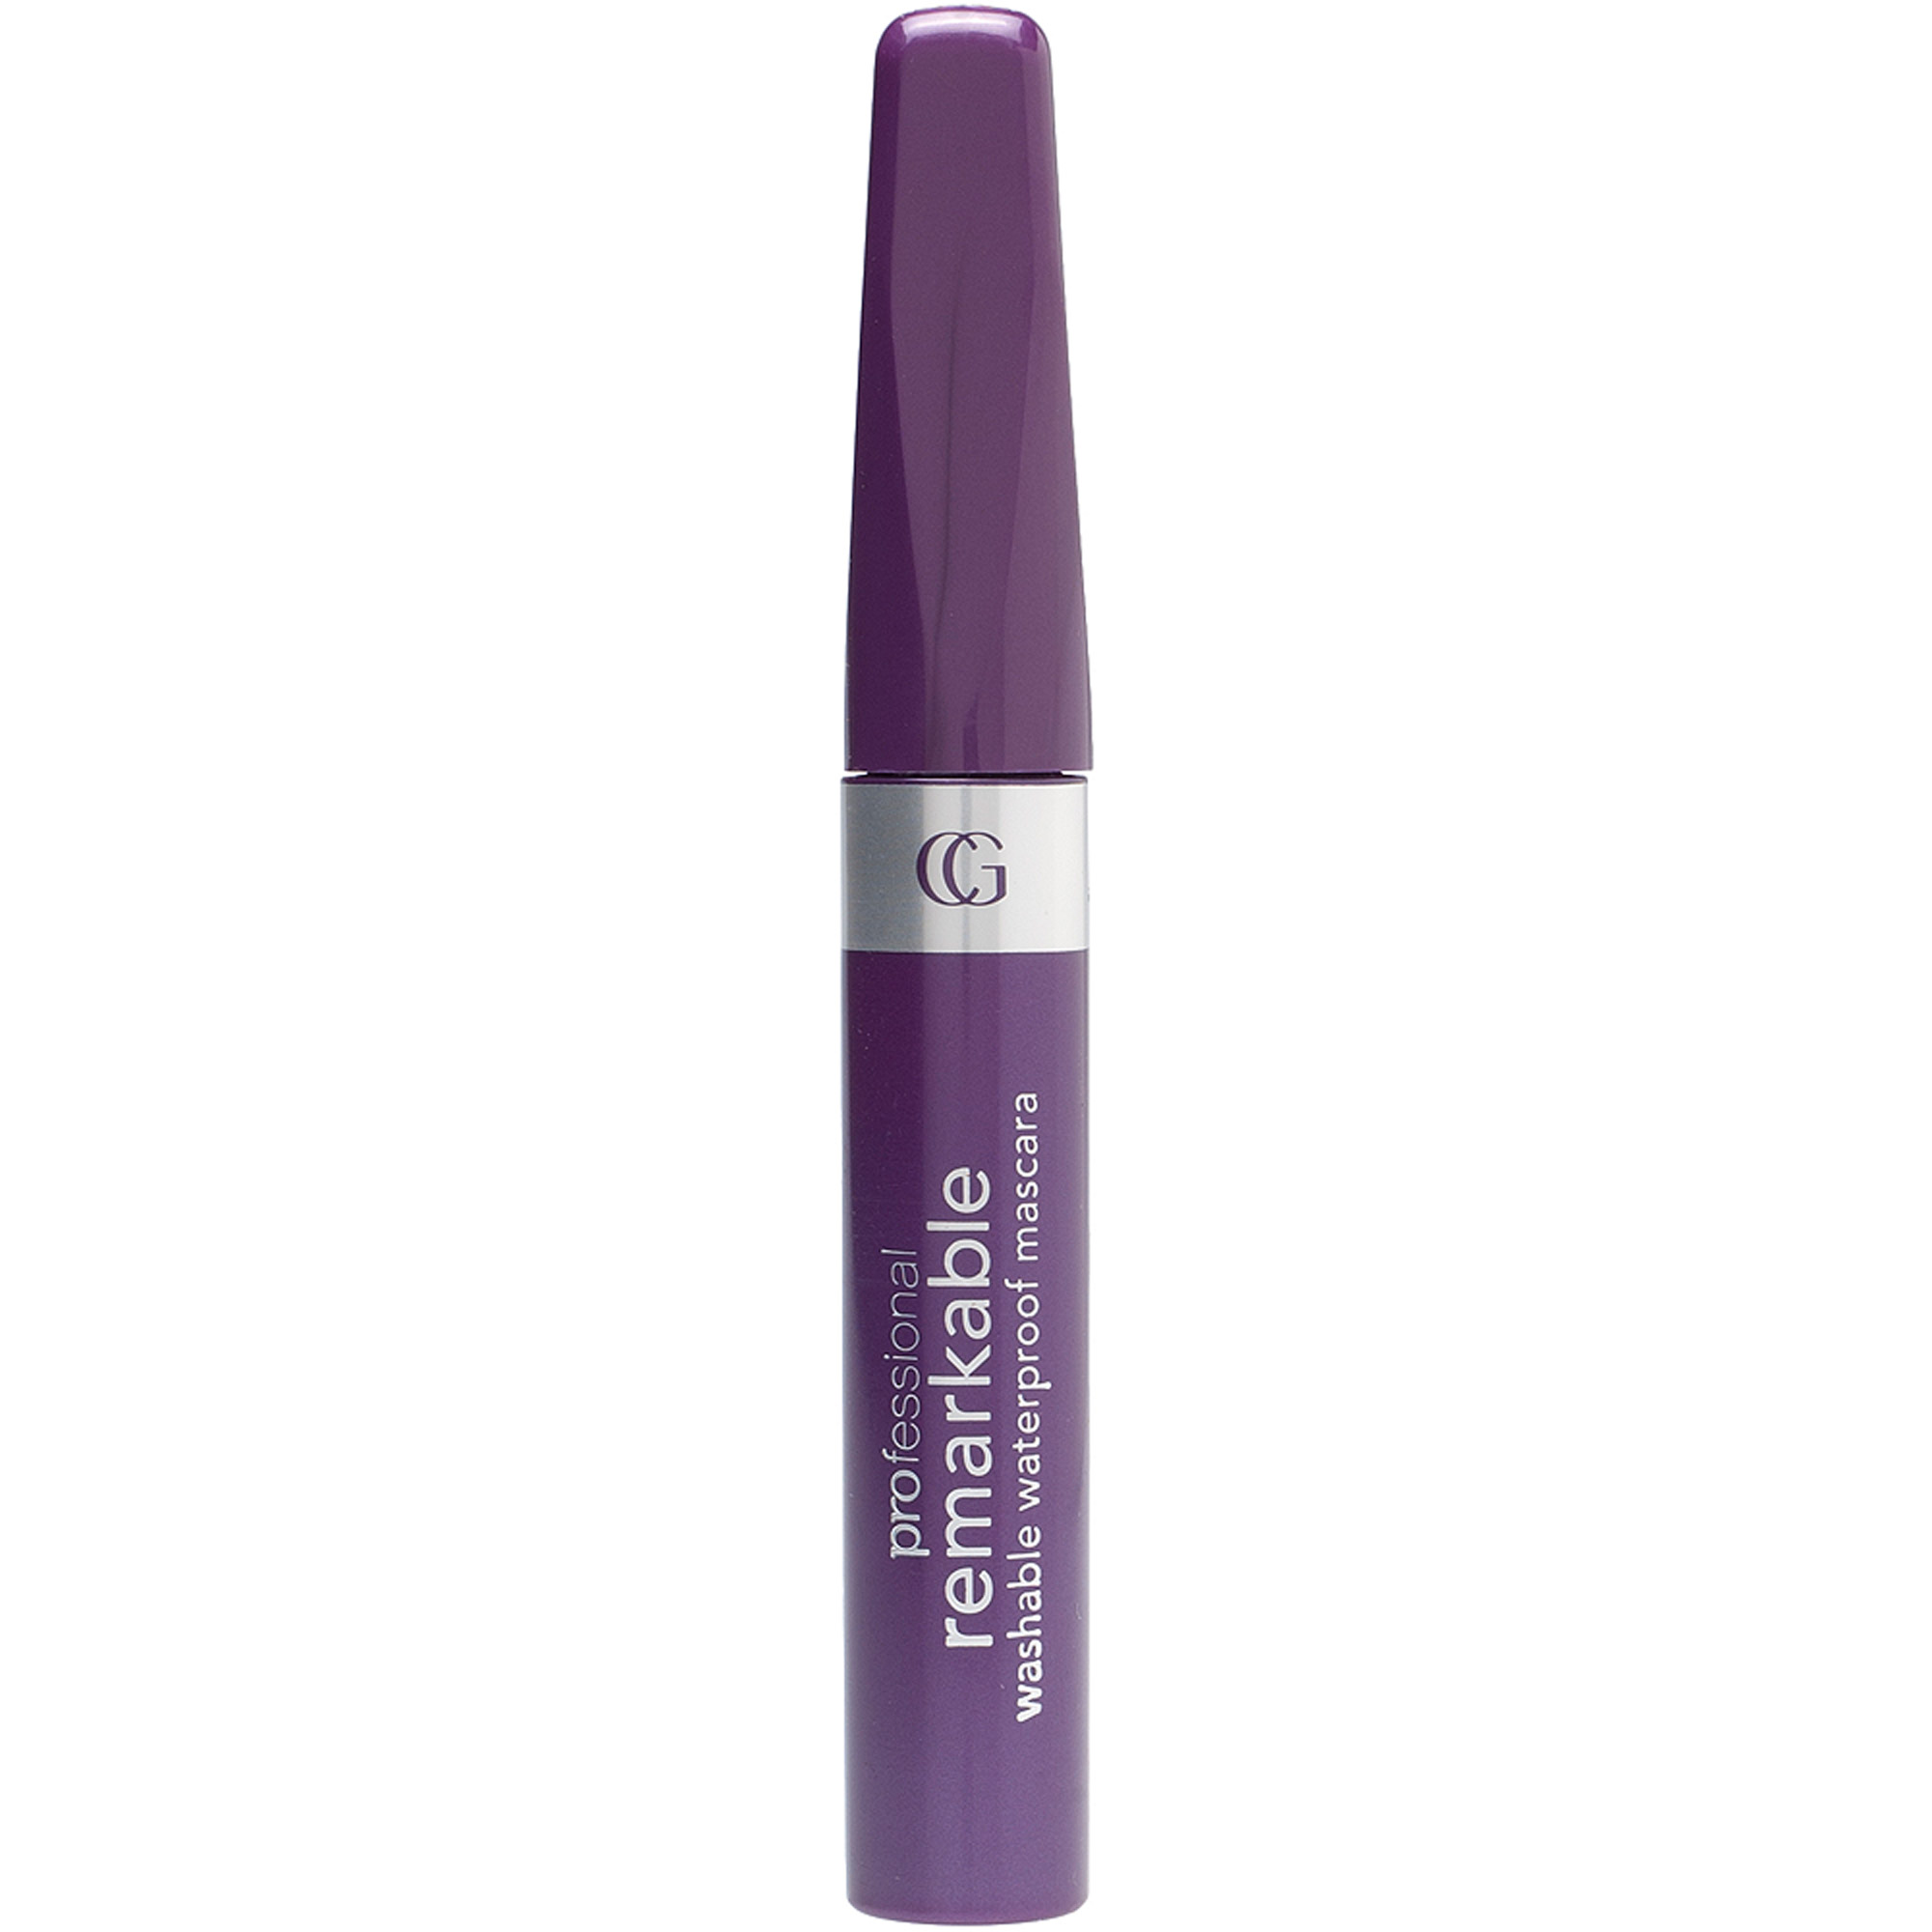 COVERGIRL Professional Remarkable Washable Waterproof Mascara Very Black 200, 0.3 oz